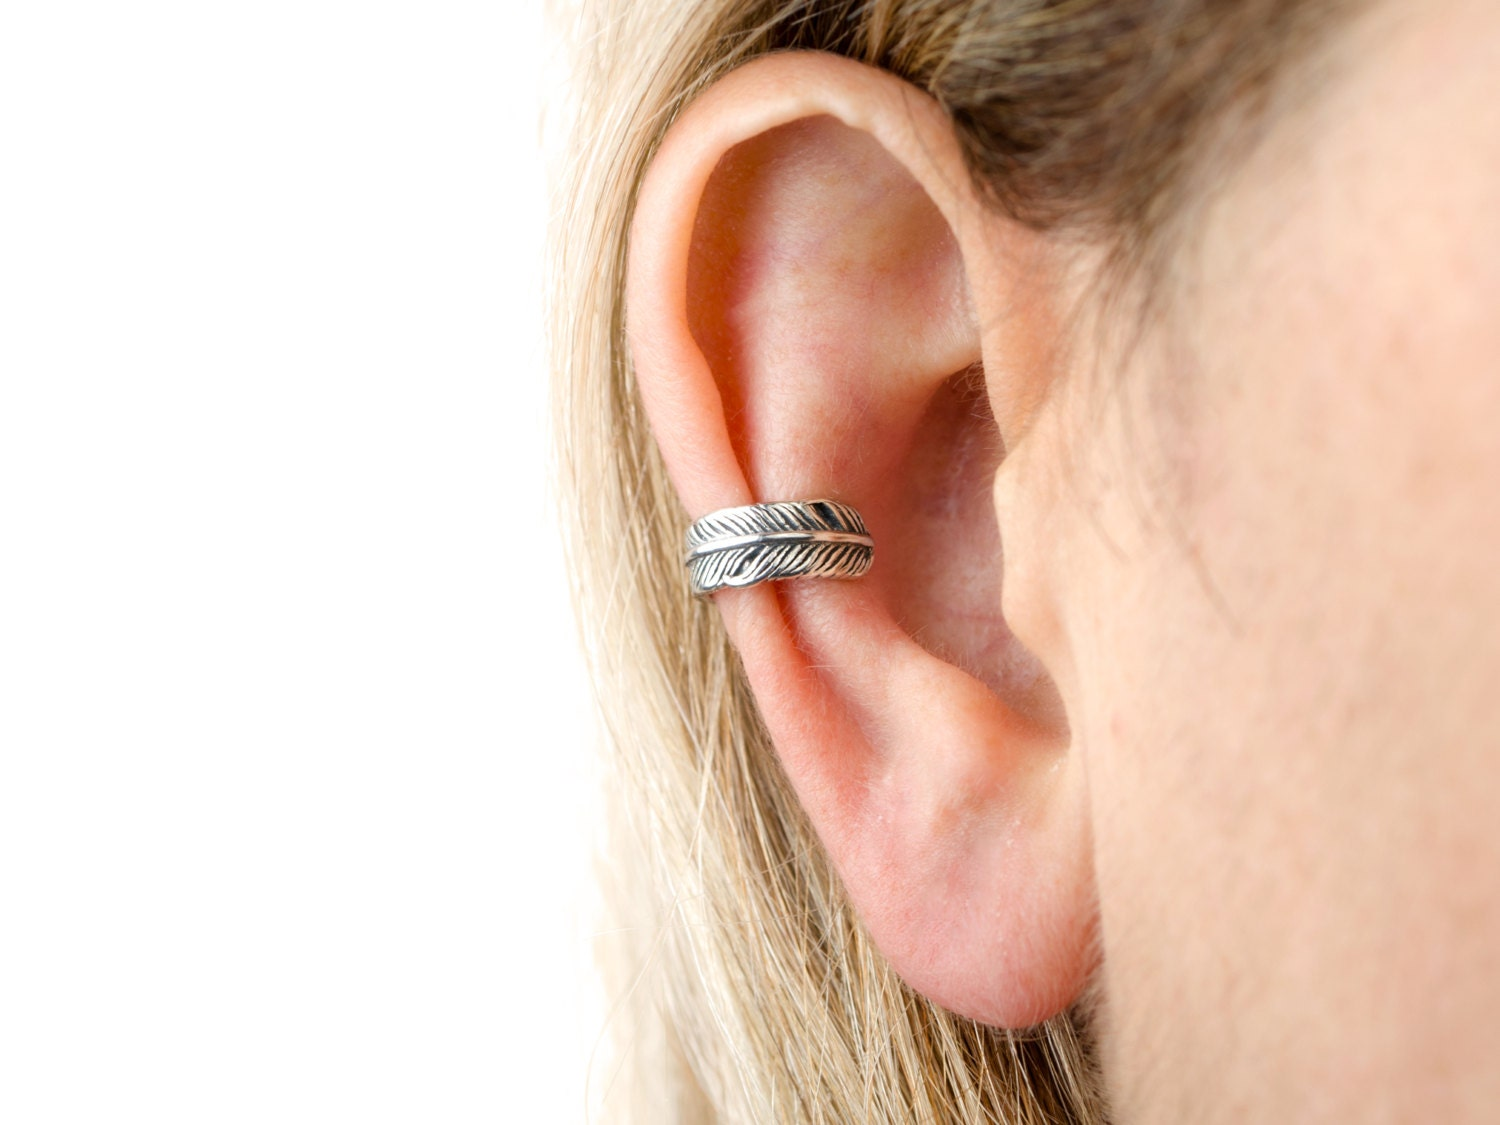 ear perfect women beautiful wrap tuku earrings for oke cartilage cuff cuffs